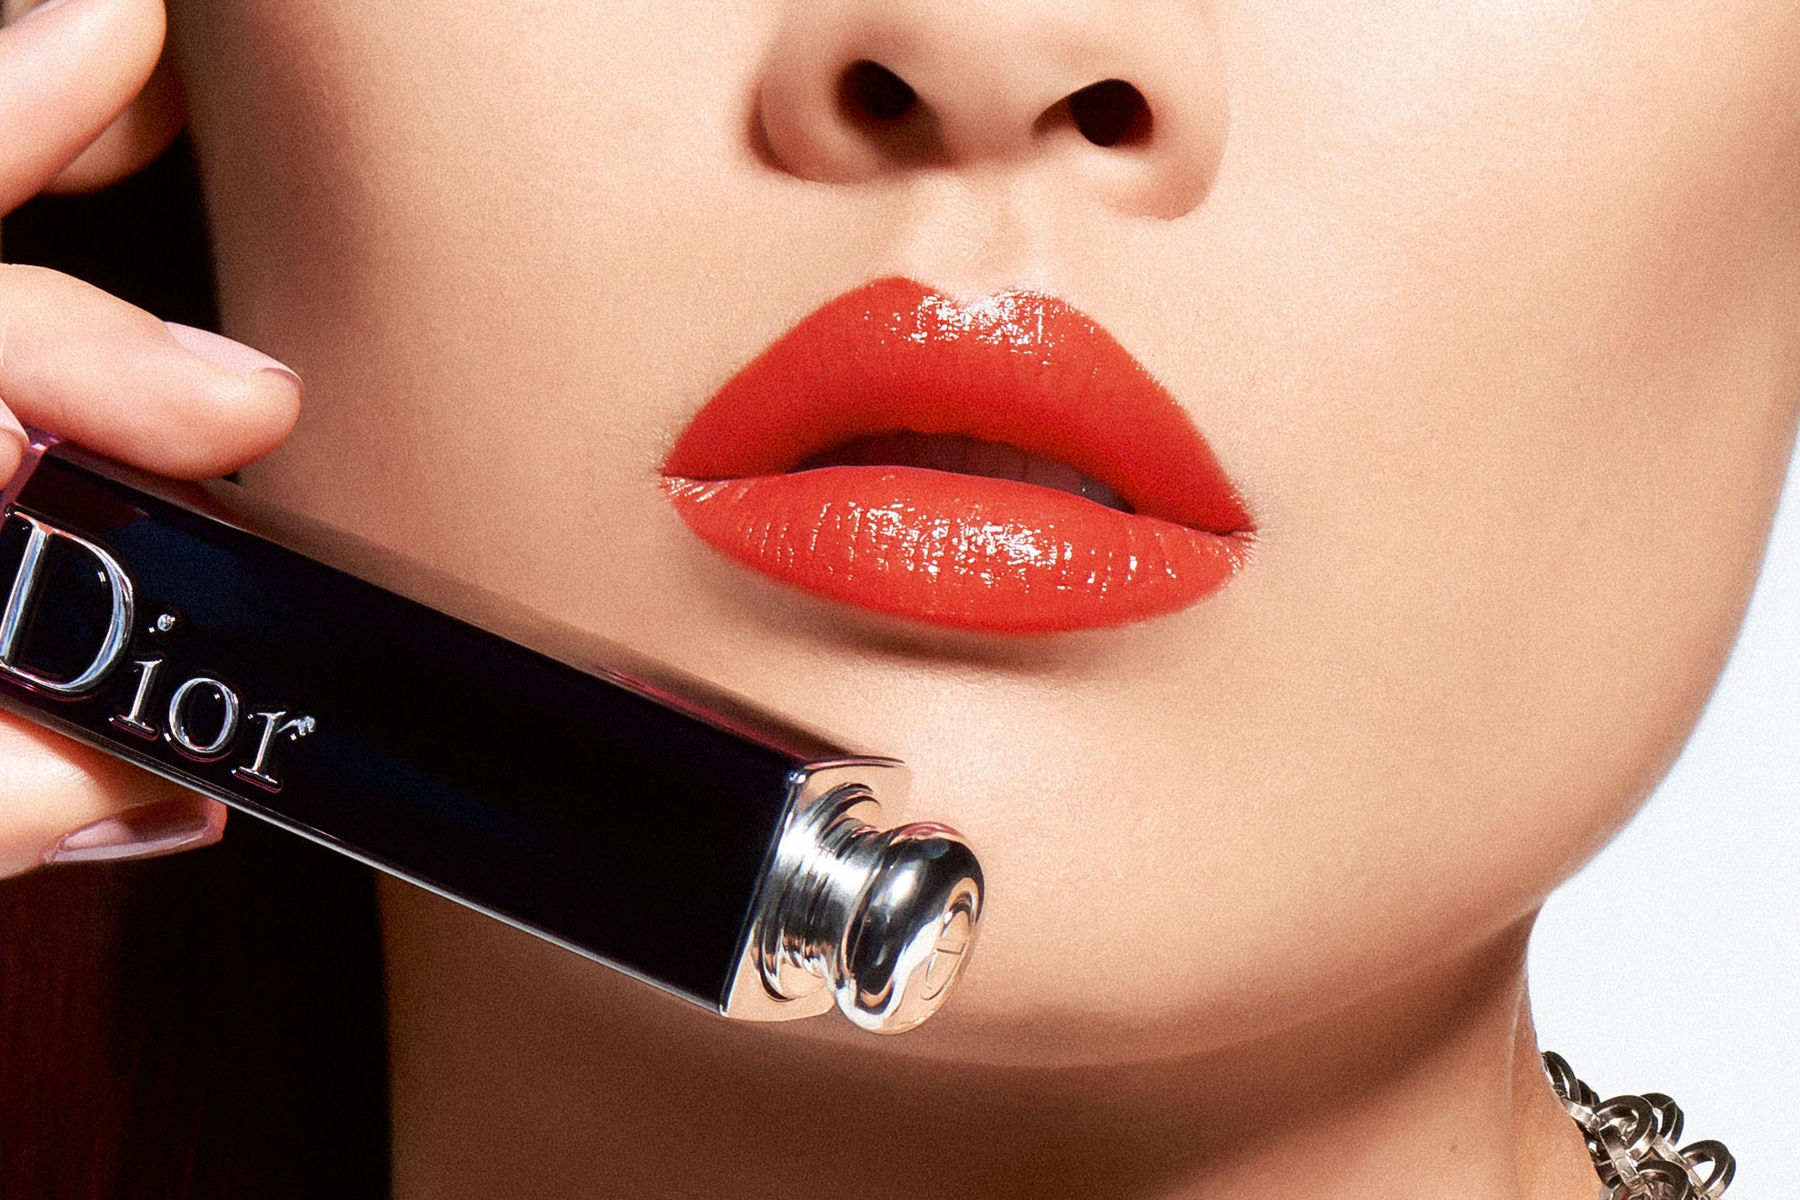 dior-addict-lacquer-stick-swatch-party-red